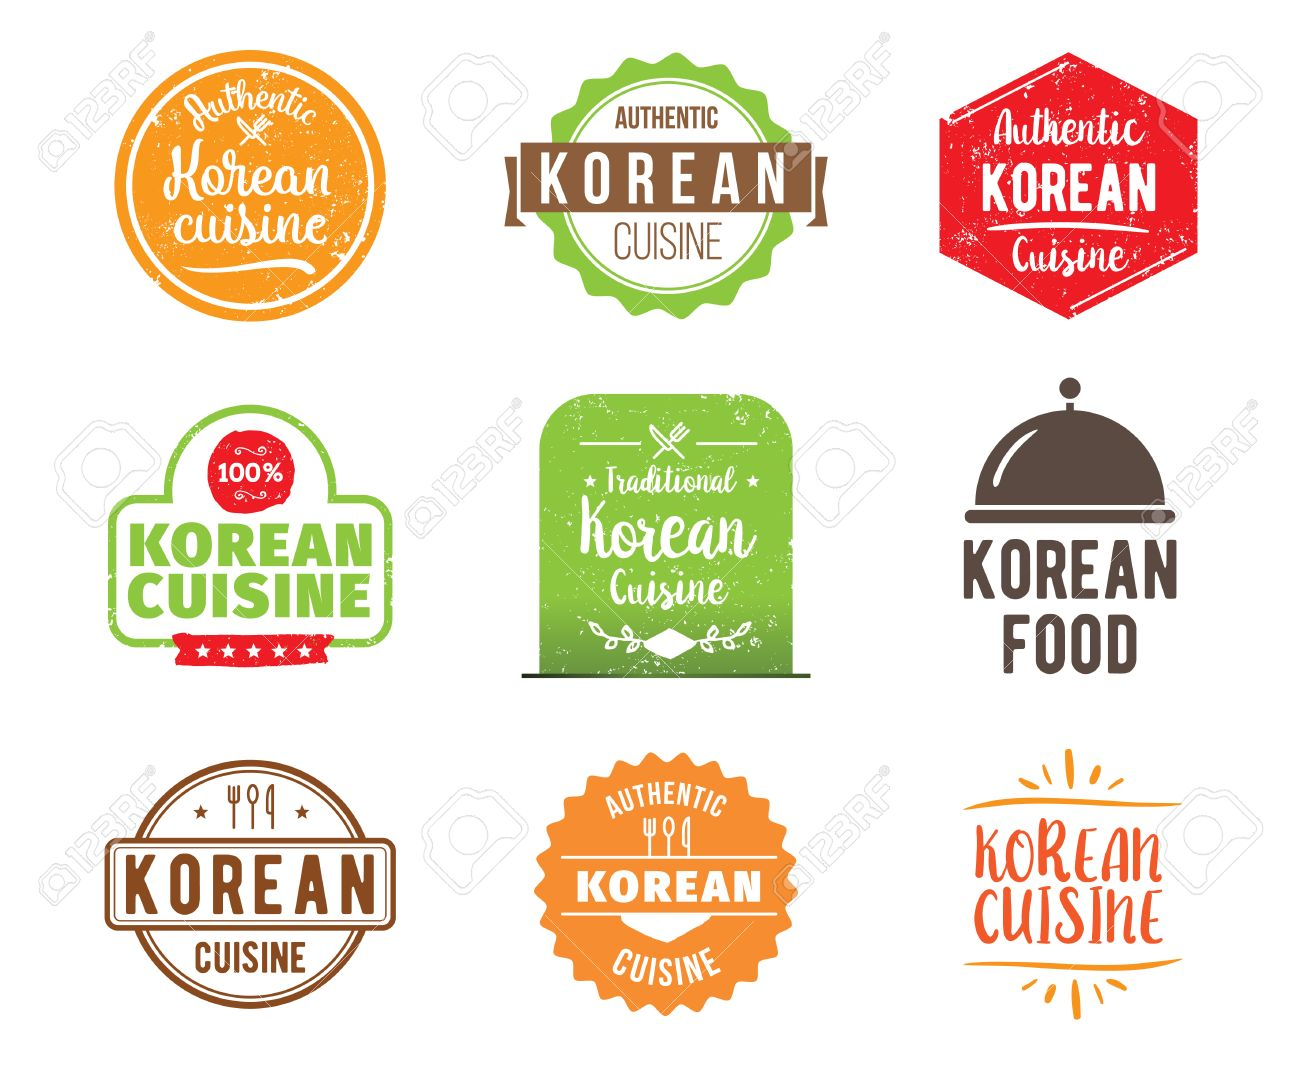 Korean Cuisine Authentic Traditional Food Typographic Design Royalty Free Cliparts Vectors And Stock Illustration Image 58461635